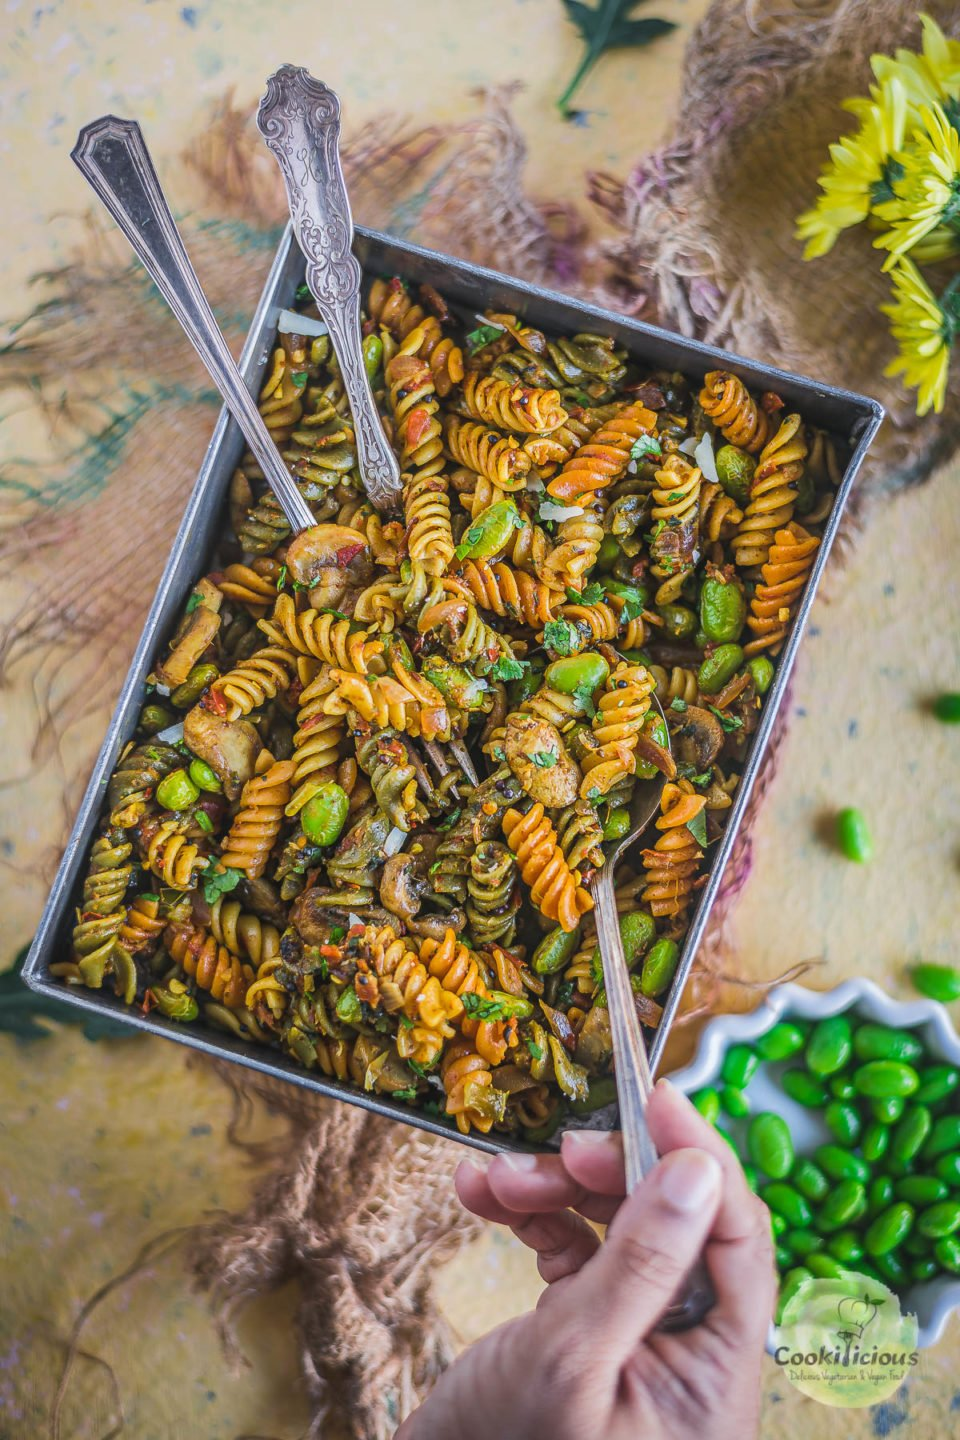 a hand digging into a platter of Indian Pasta Recipe | One-Pot Vegan Curry Pasta Dish with a spoon